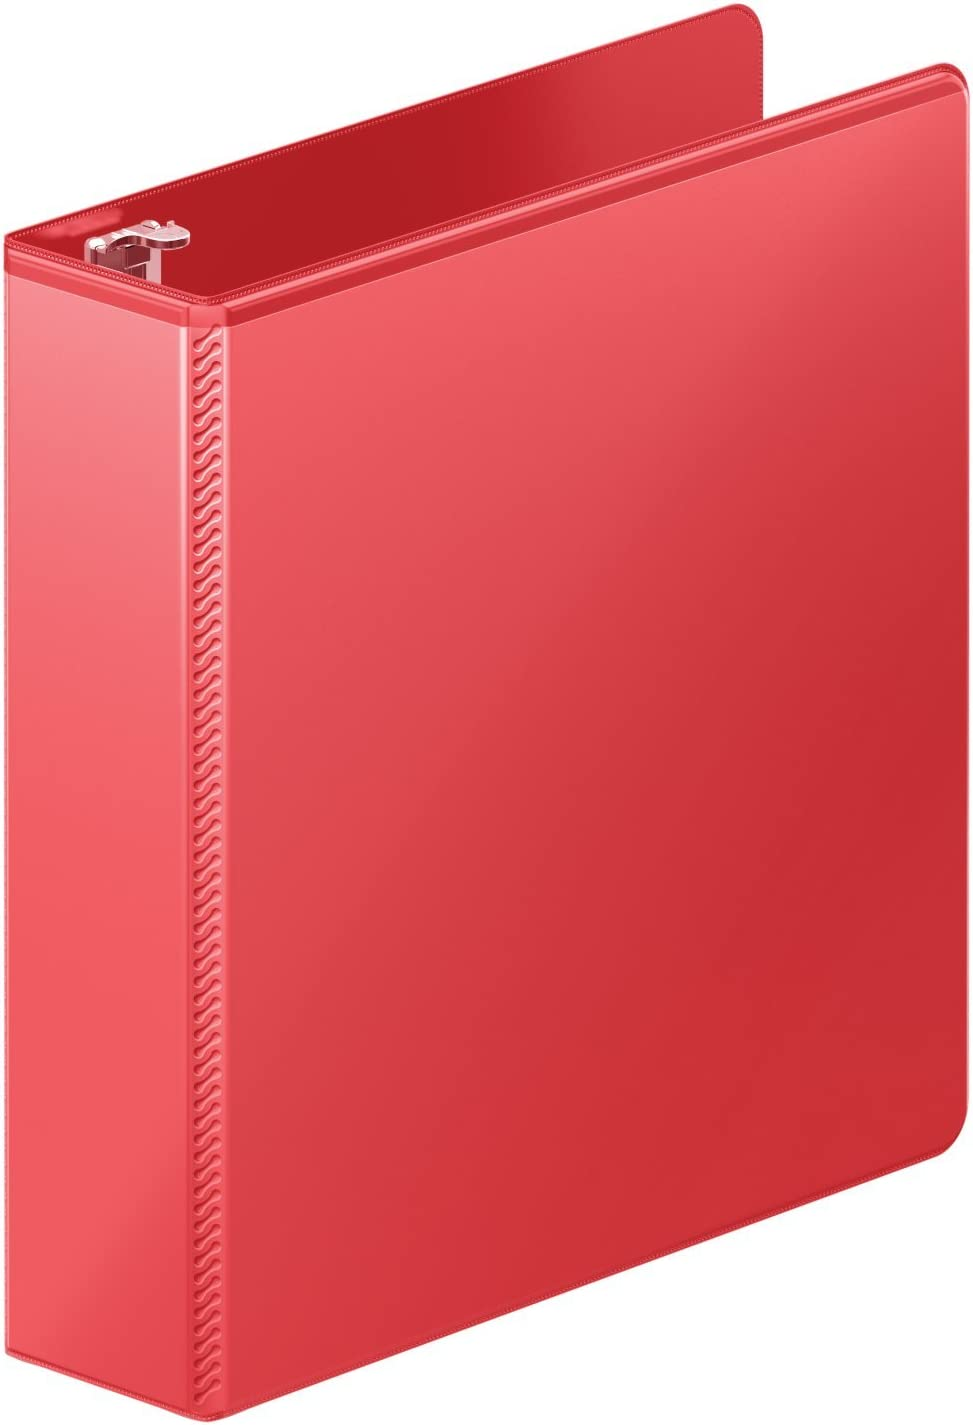 2 Inch, Wilson Jones Heavy Duty Round Ring View Binder with Extra Durable Hinge